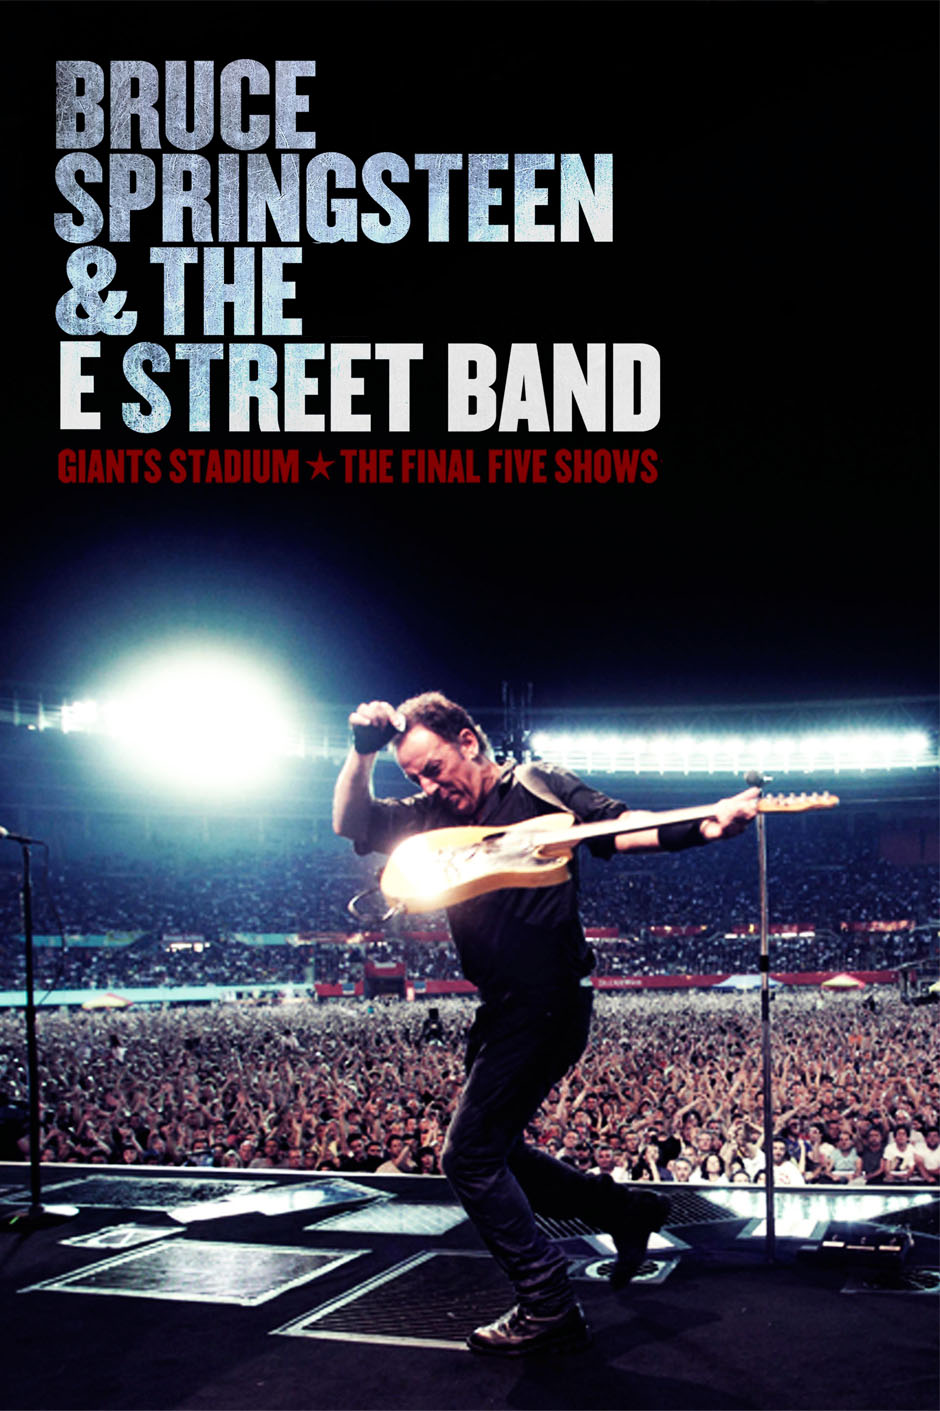 Bruce Springsteen The E Street Band War